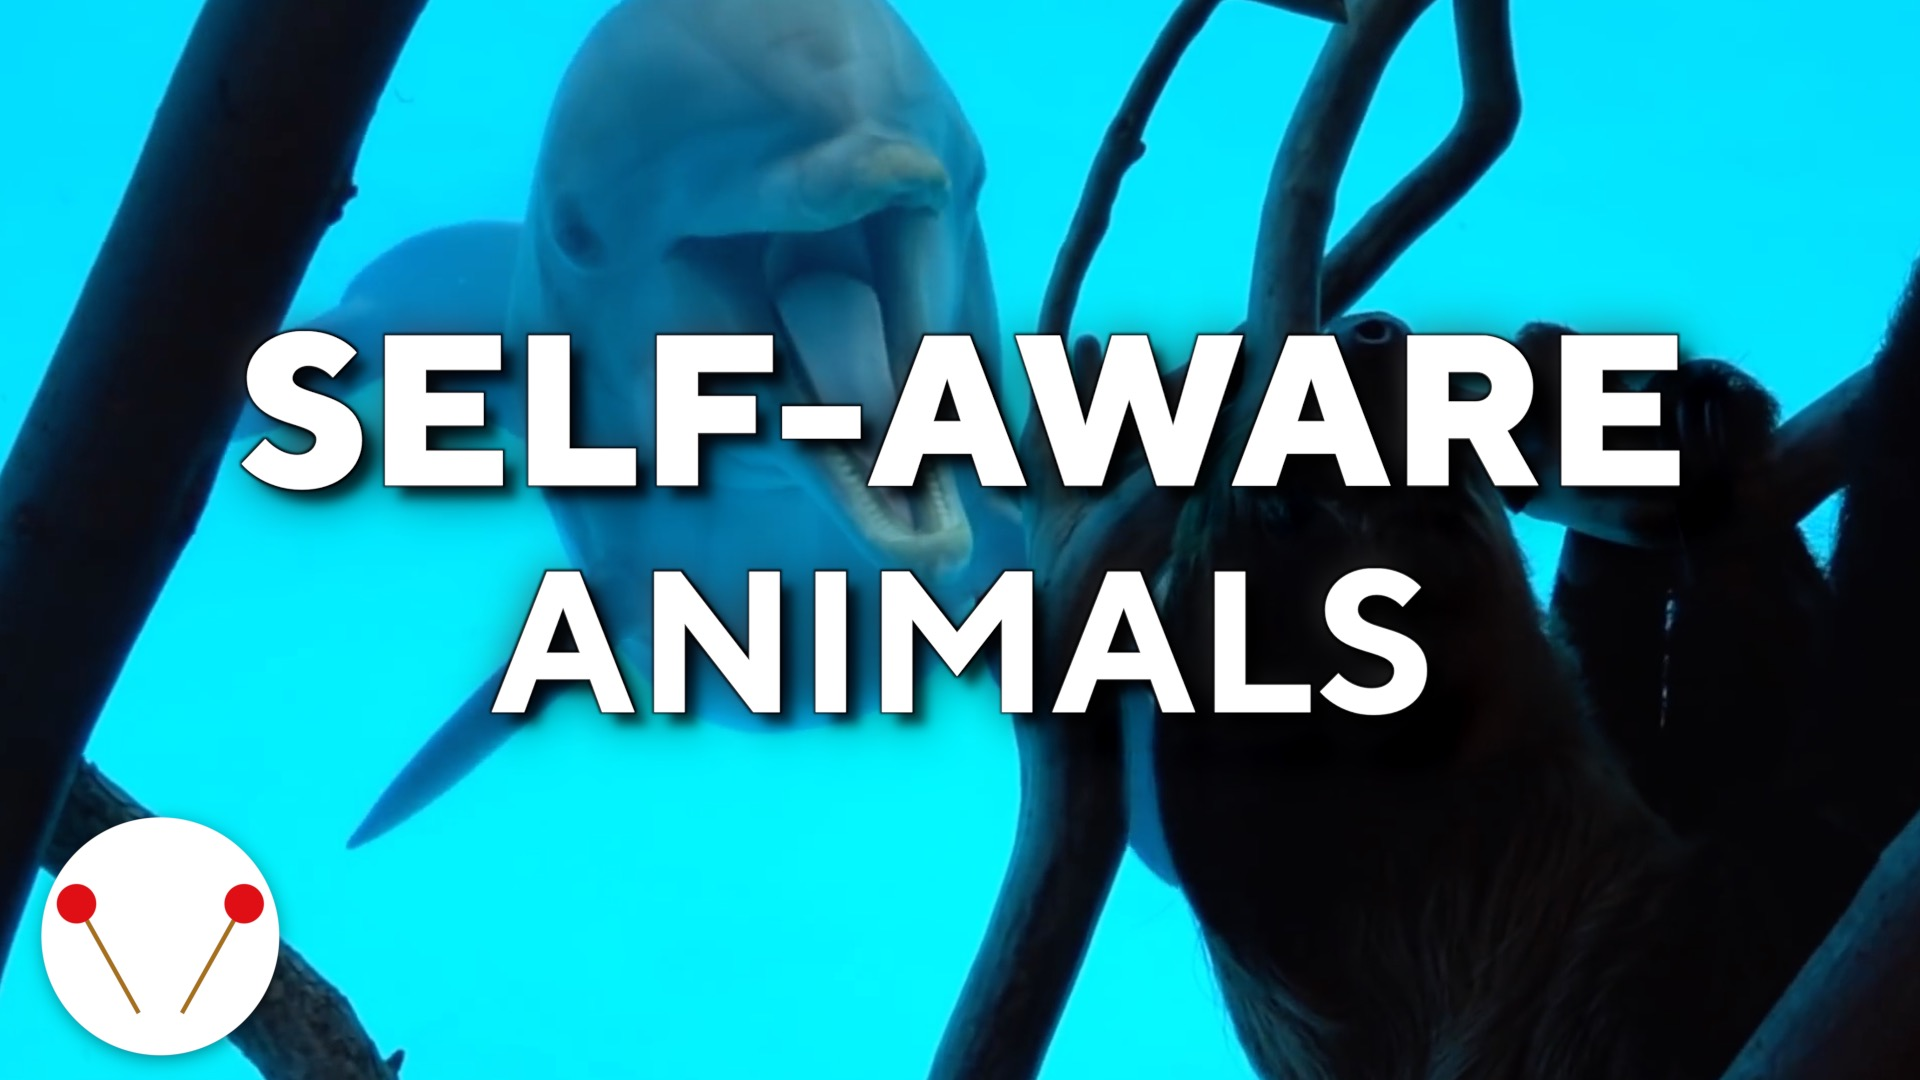 6 Animals That Show Signs Of Being Self-Aware